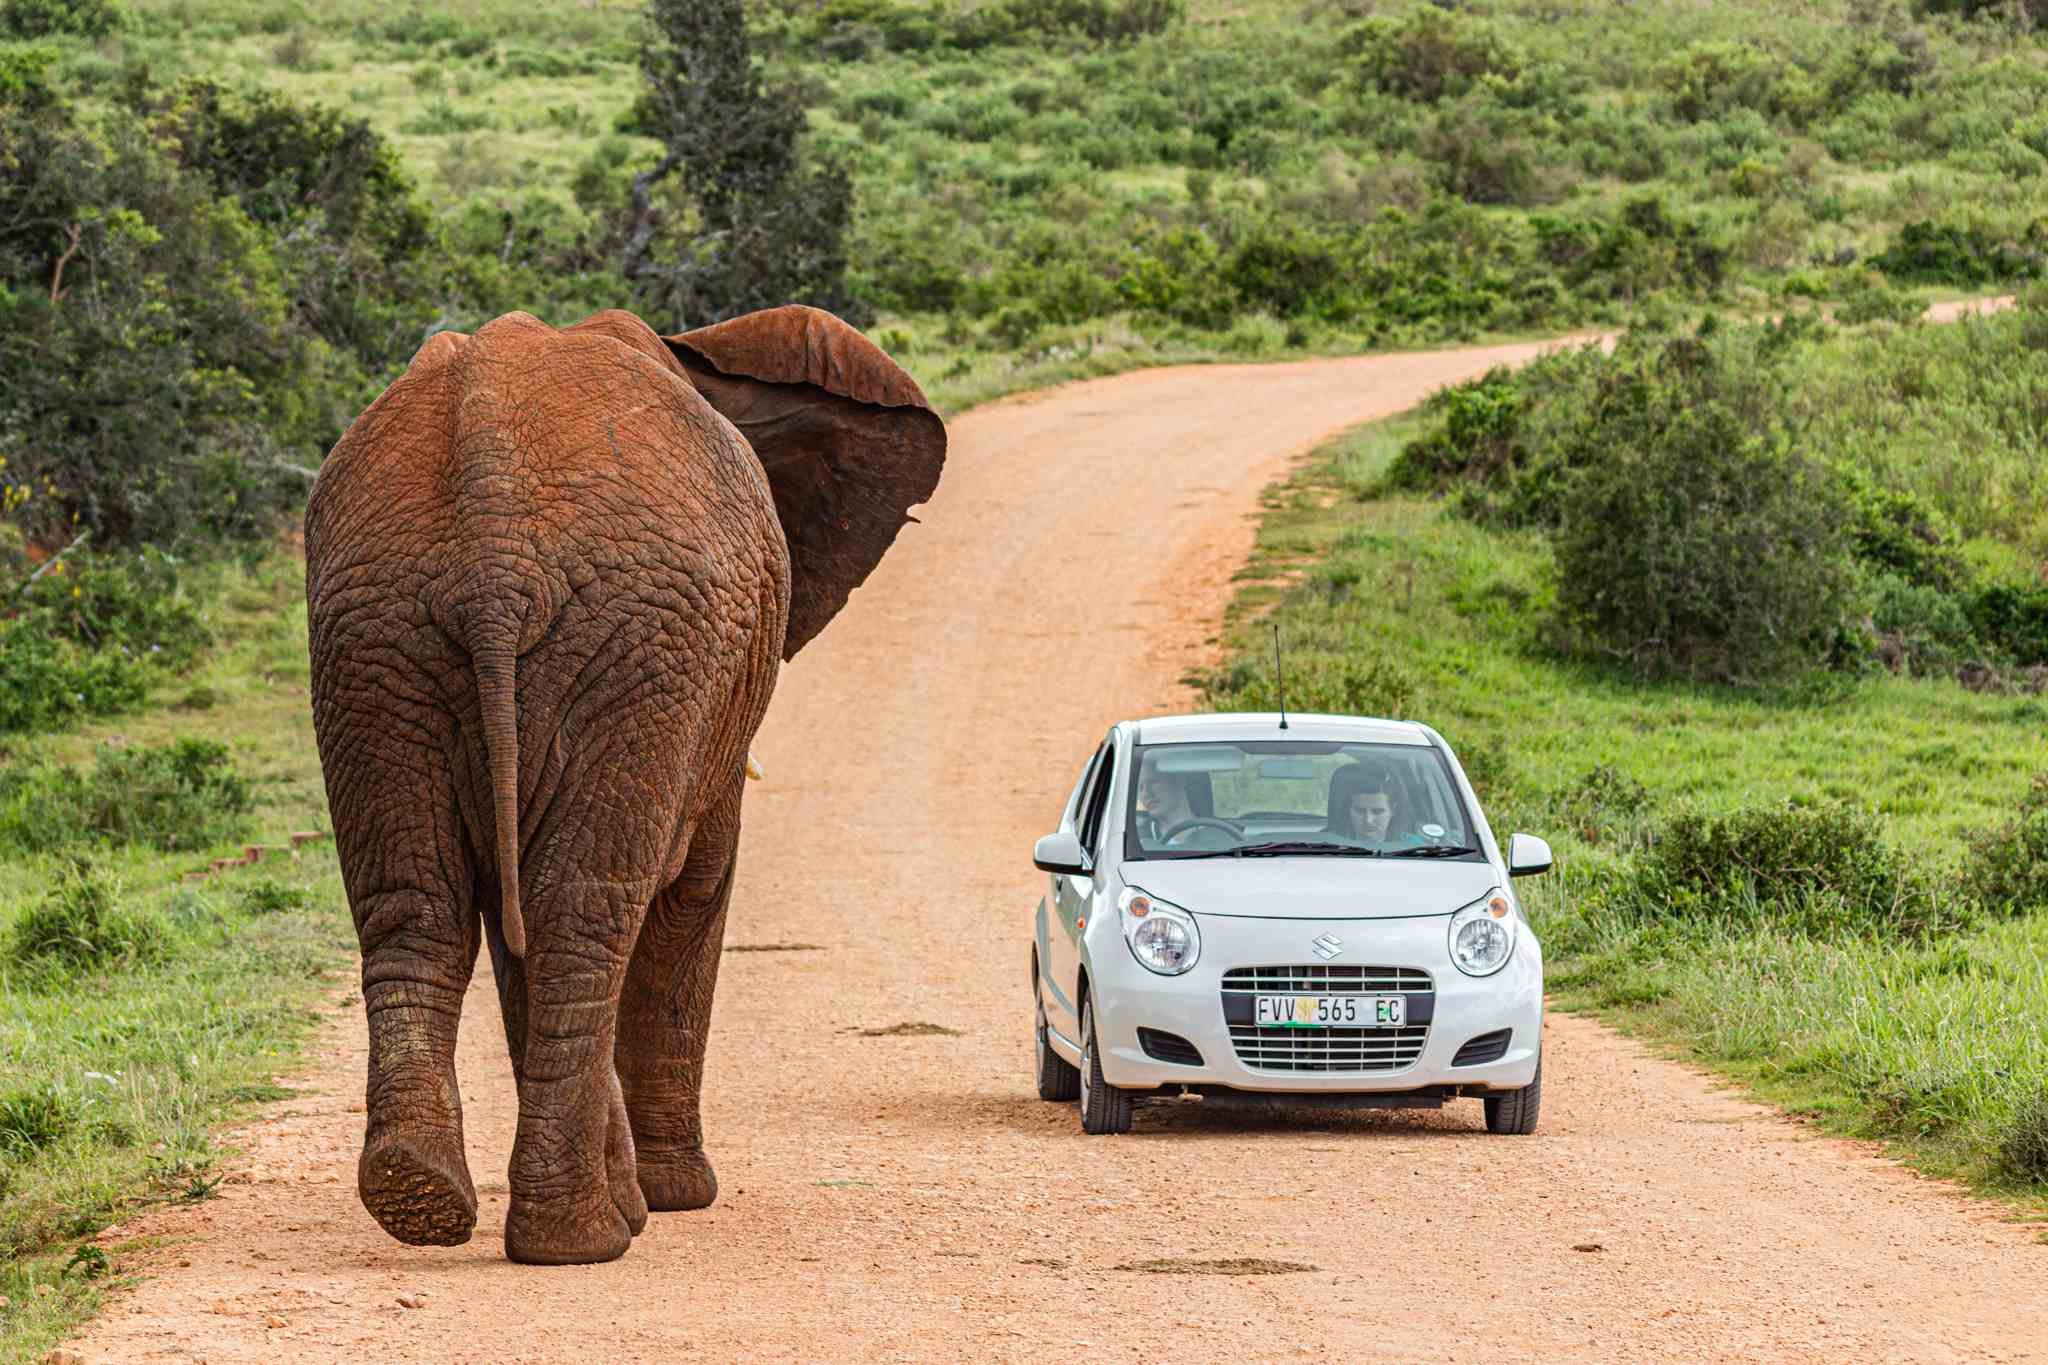 a small white car is pictured next to a large muddy elephant in the middle of an empty dirt road